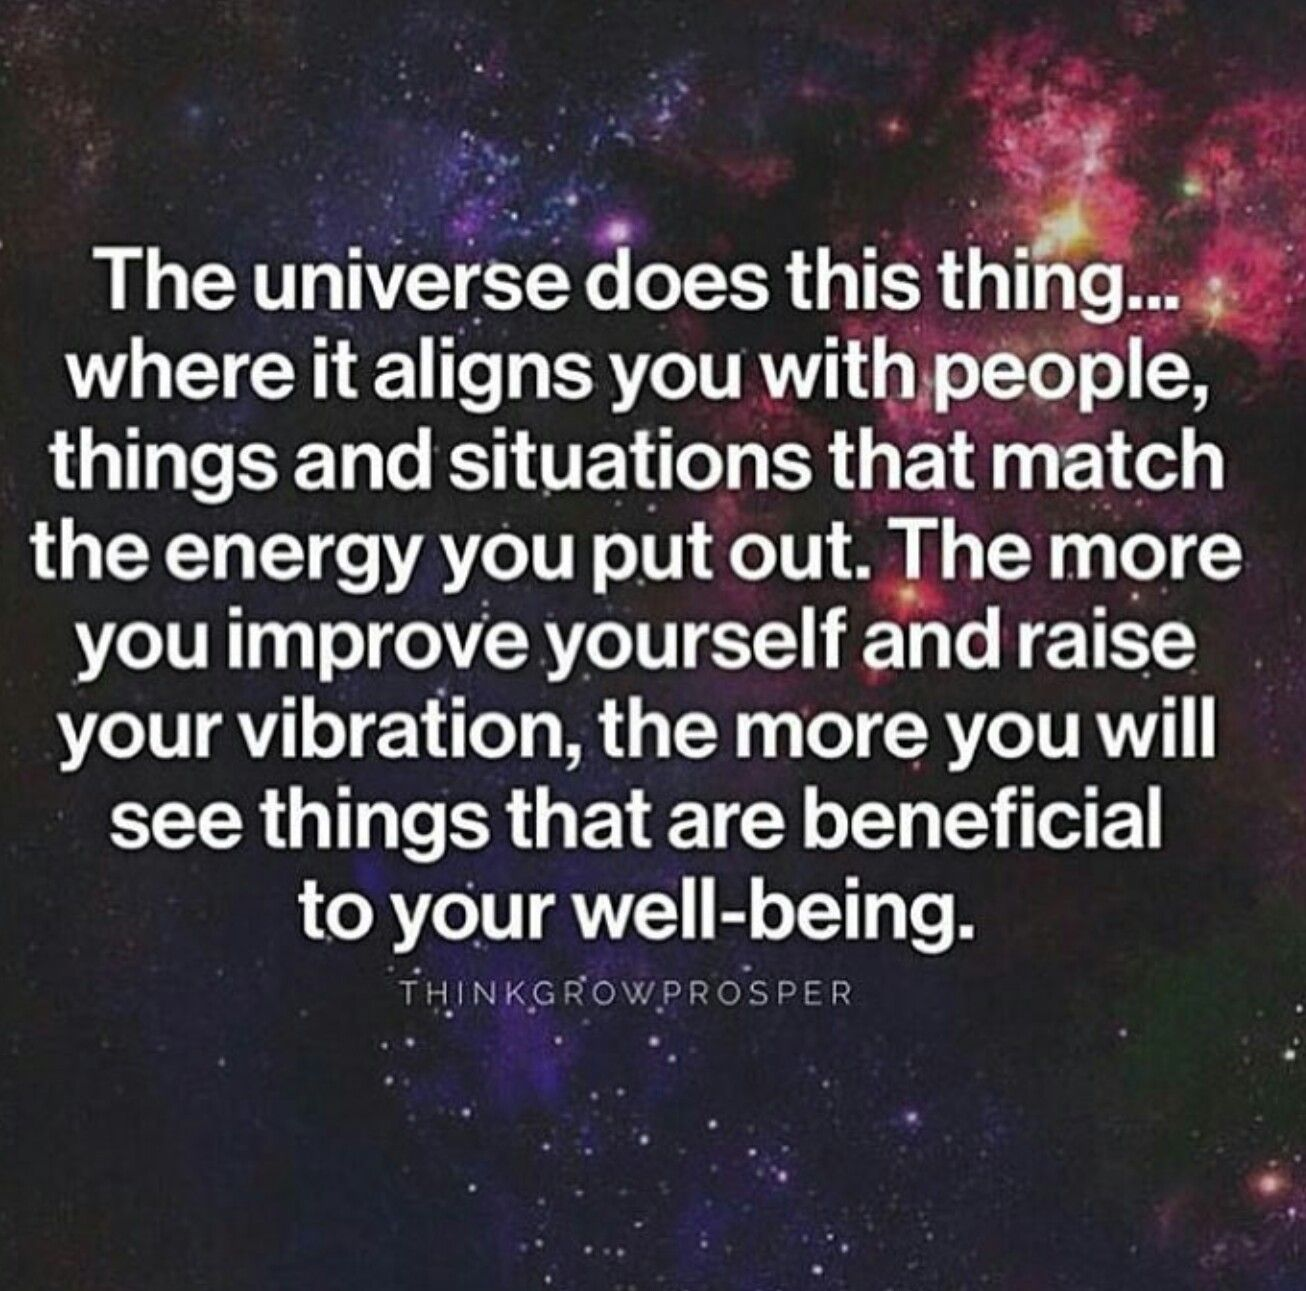 Love Attraction Quotes The Universe Aligns You With People And Situations That Match Your